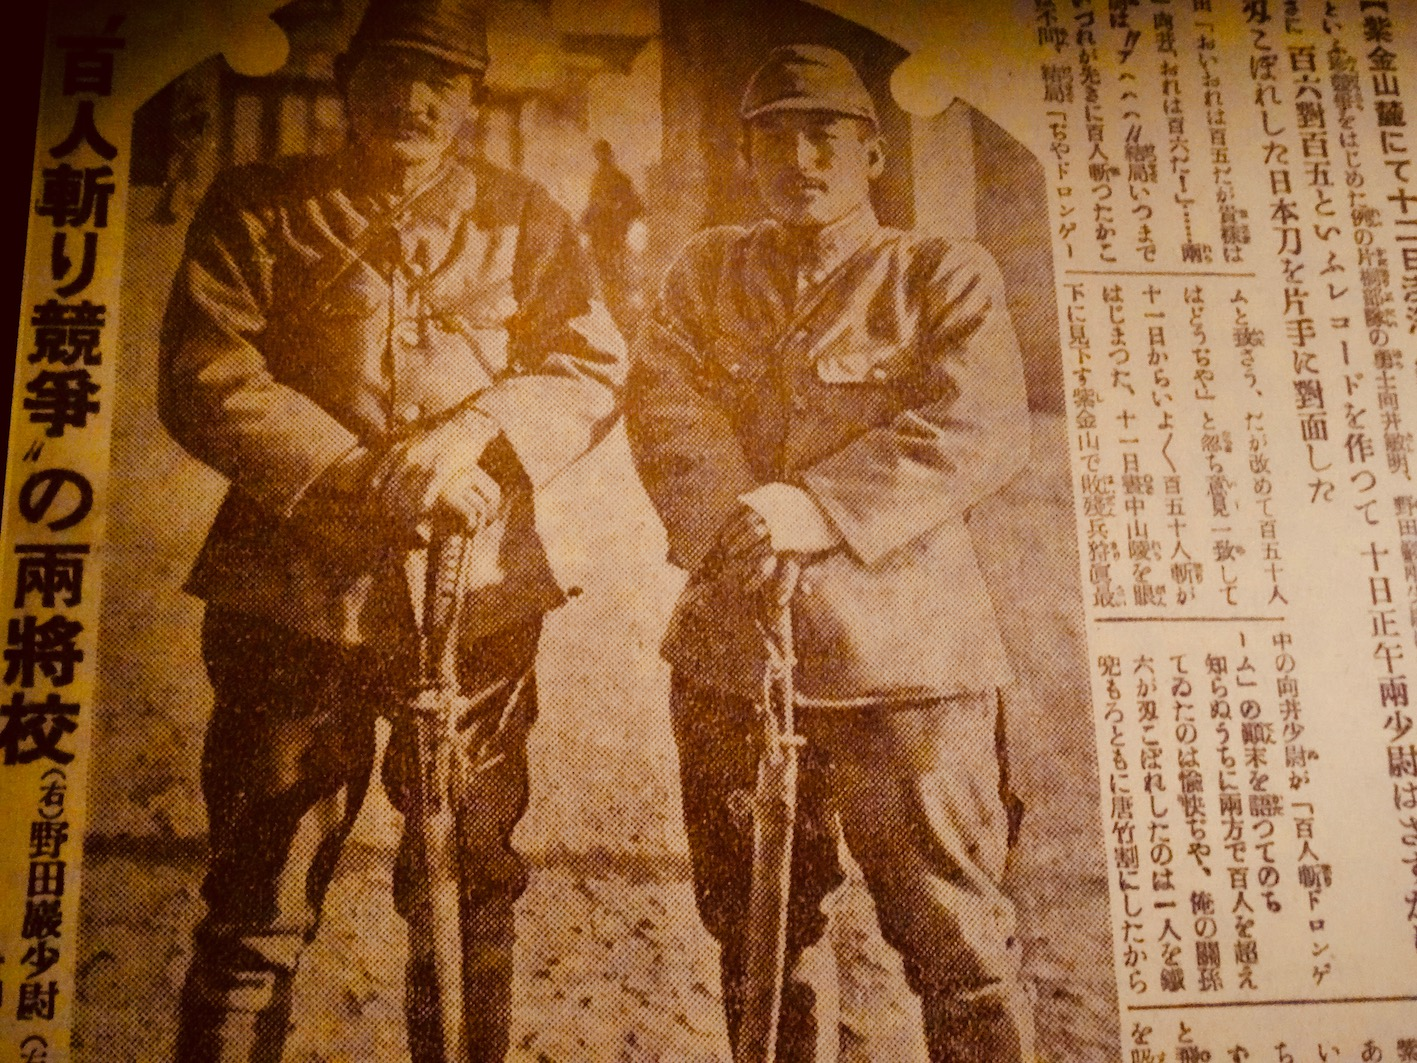 Japanese soldiers photo Nanjing Massacre Memorial China